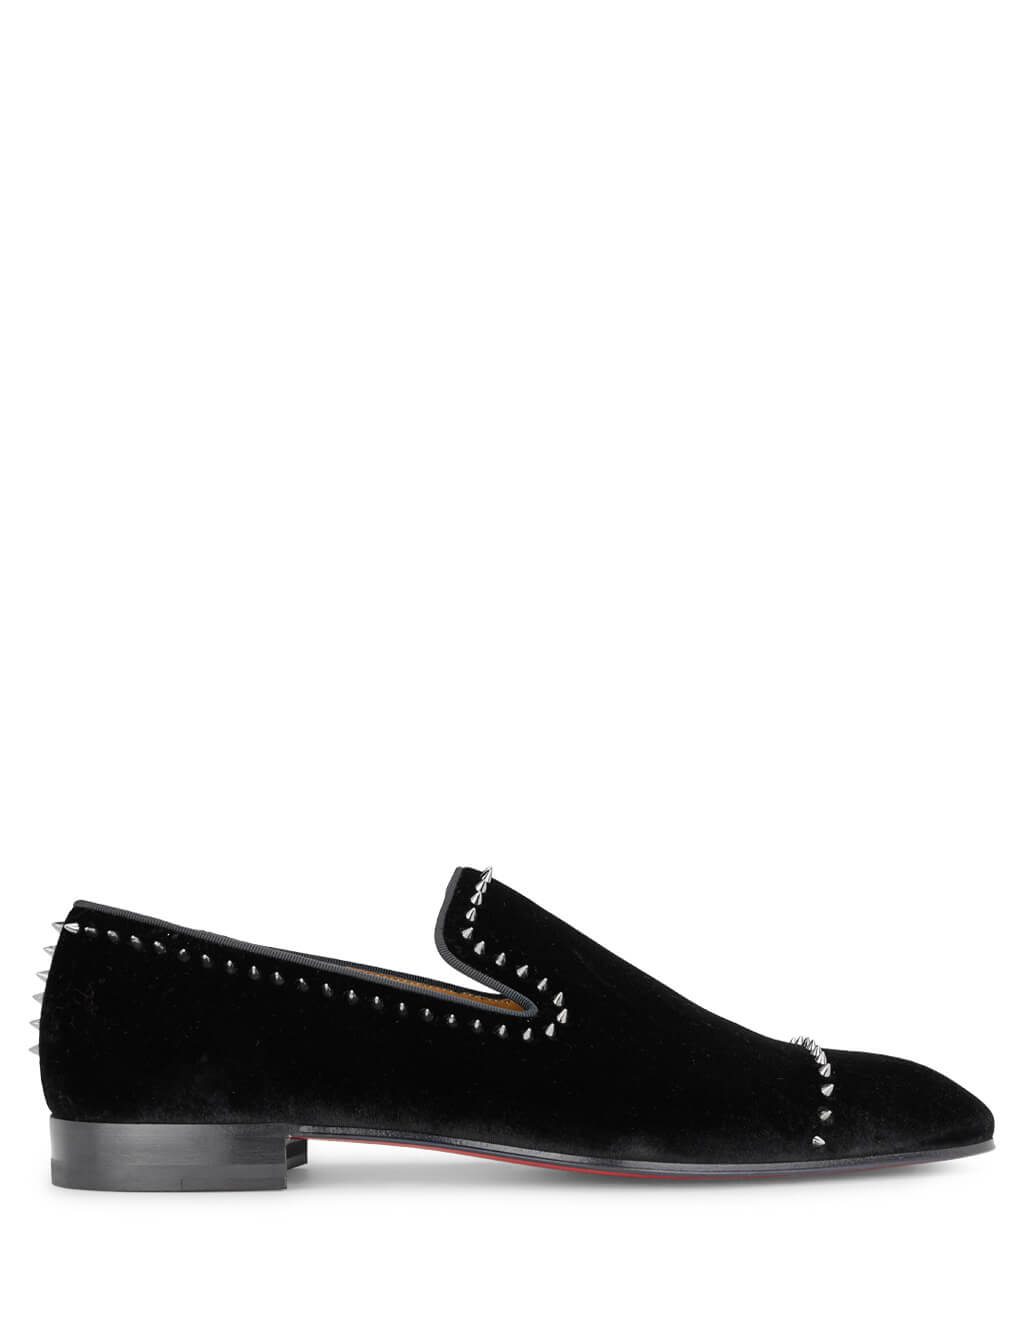 Christian Louboutin Men's Giulio Fashion Black Dandeton Loafers 3191156B002